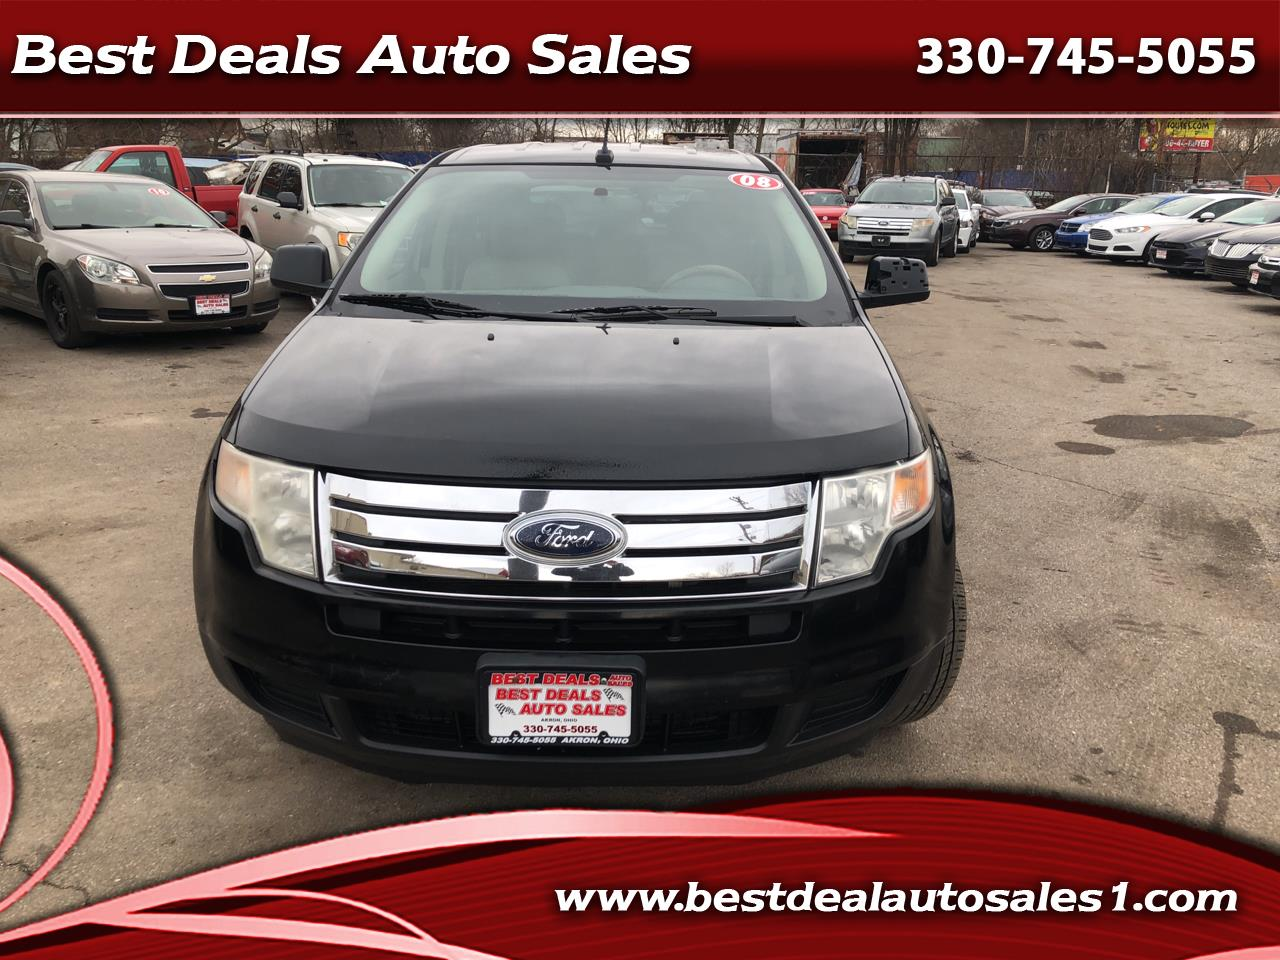 2008 Ford Edge 4dr SE AWD